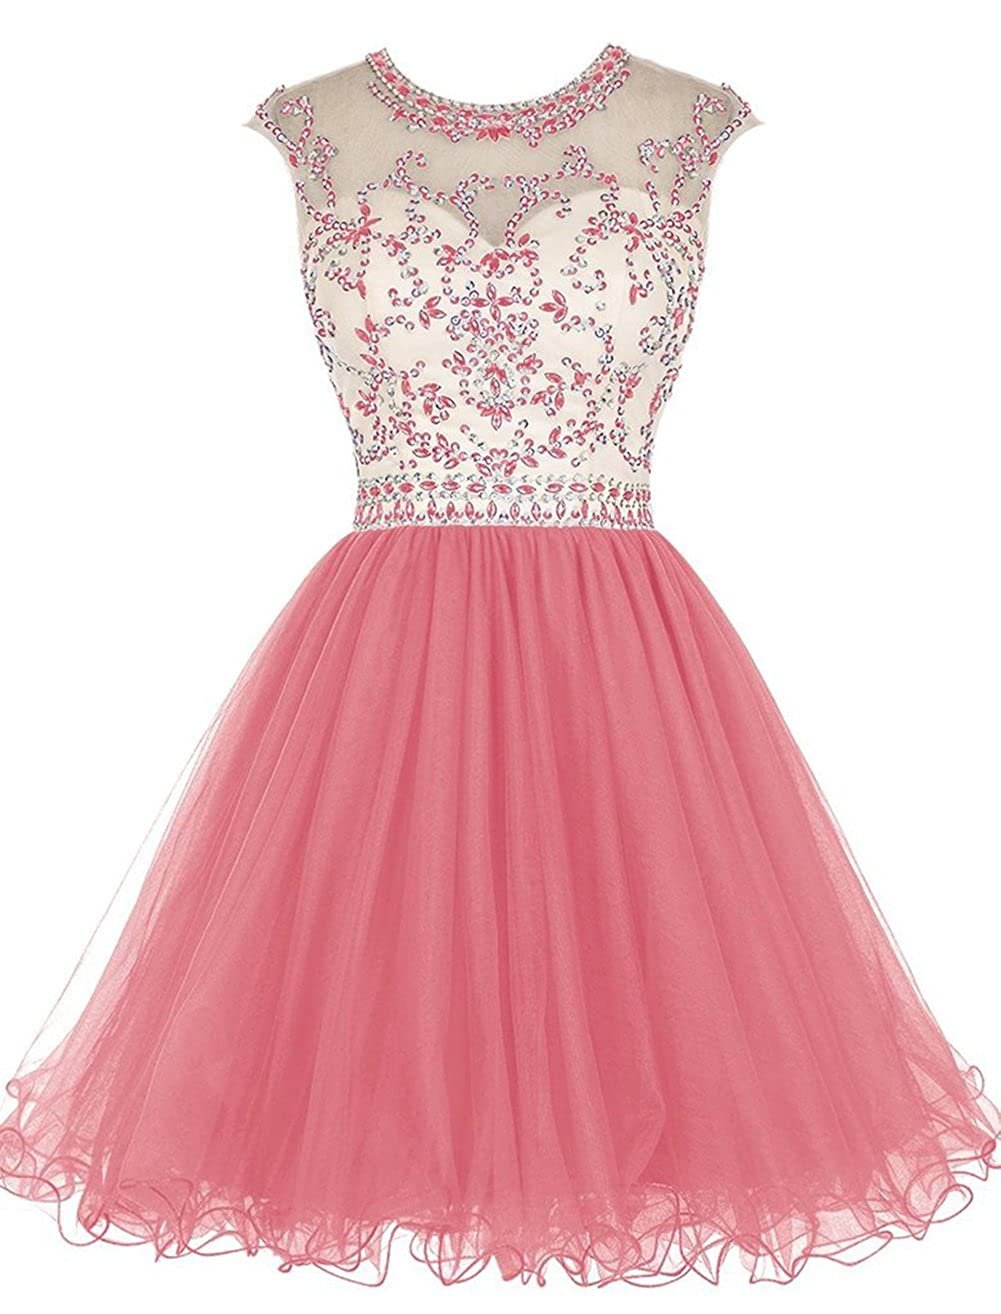 Watermelon Caissen Women's Short Beaded Sheer Crew Neck Rhinestones Tulle Prom Dress Open Back with Zipper Party Wear Ball Gown